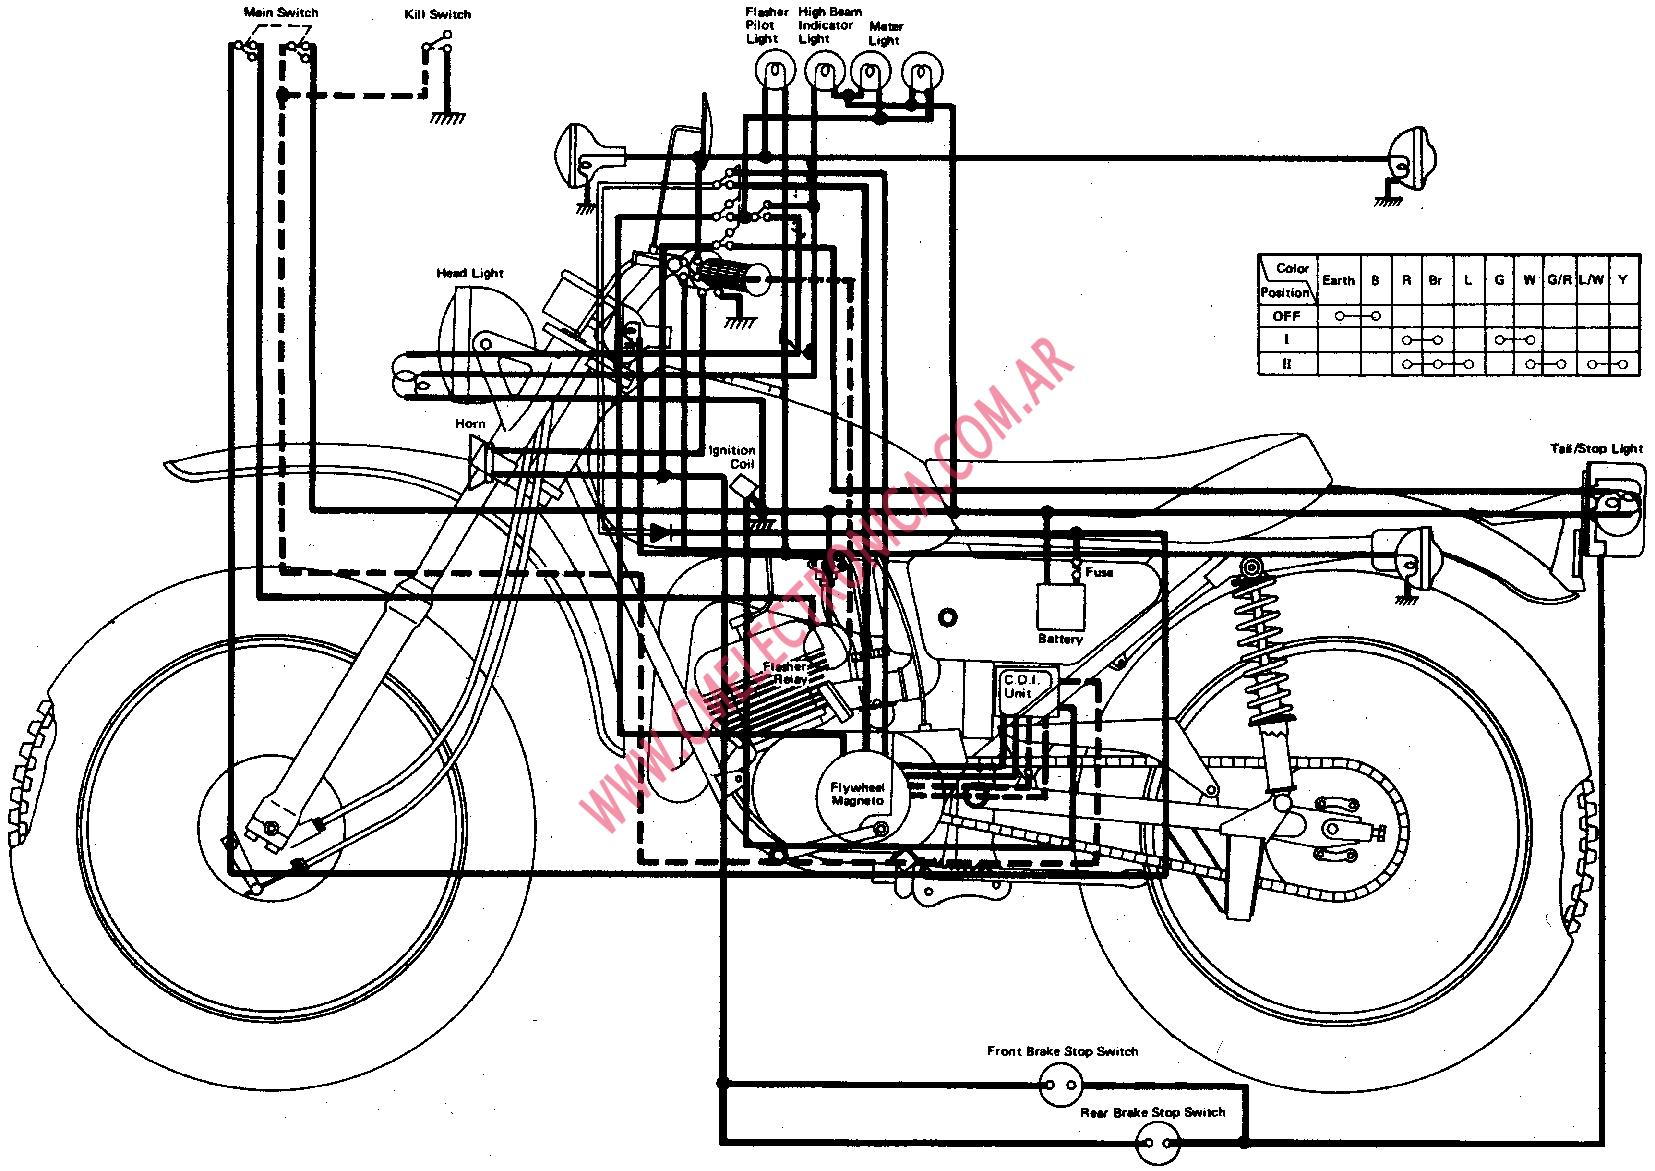 hight resolution of 1974 yamaha dt 100 wiring diagram wiring diagram third level rh 19 16 14 jacobwinterstein com 1982 yamaha dt 100 1978 yamaha 100 enduro